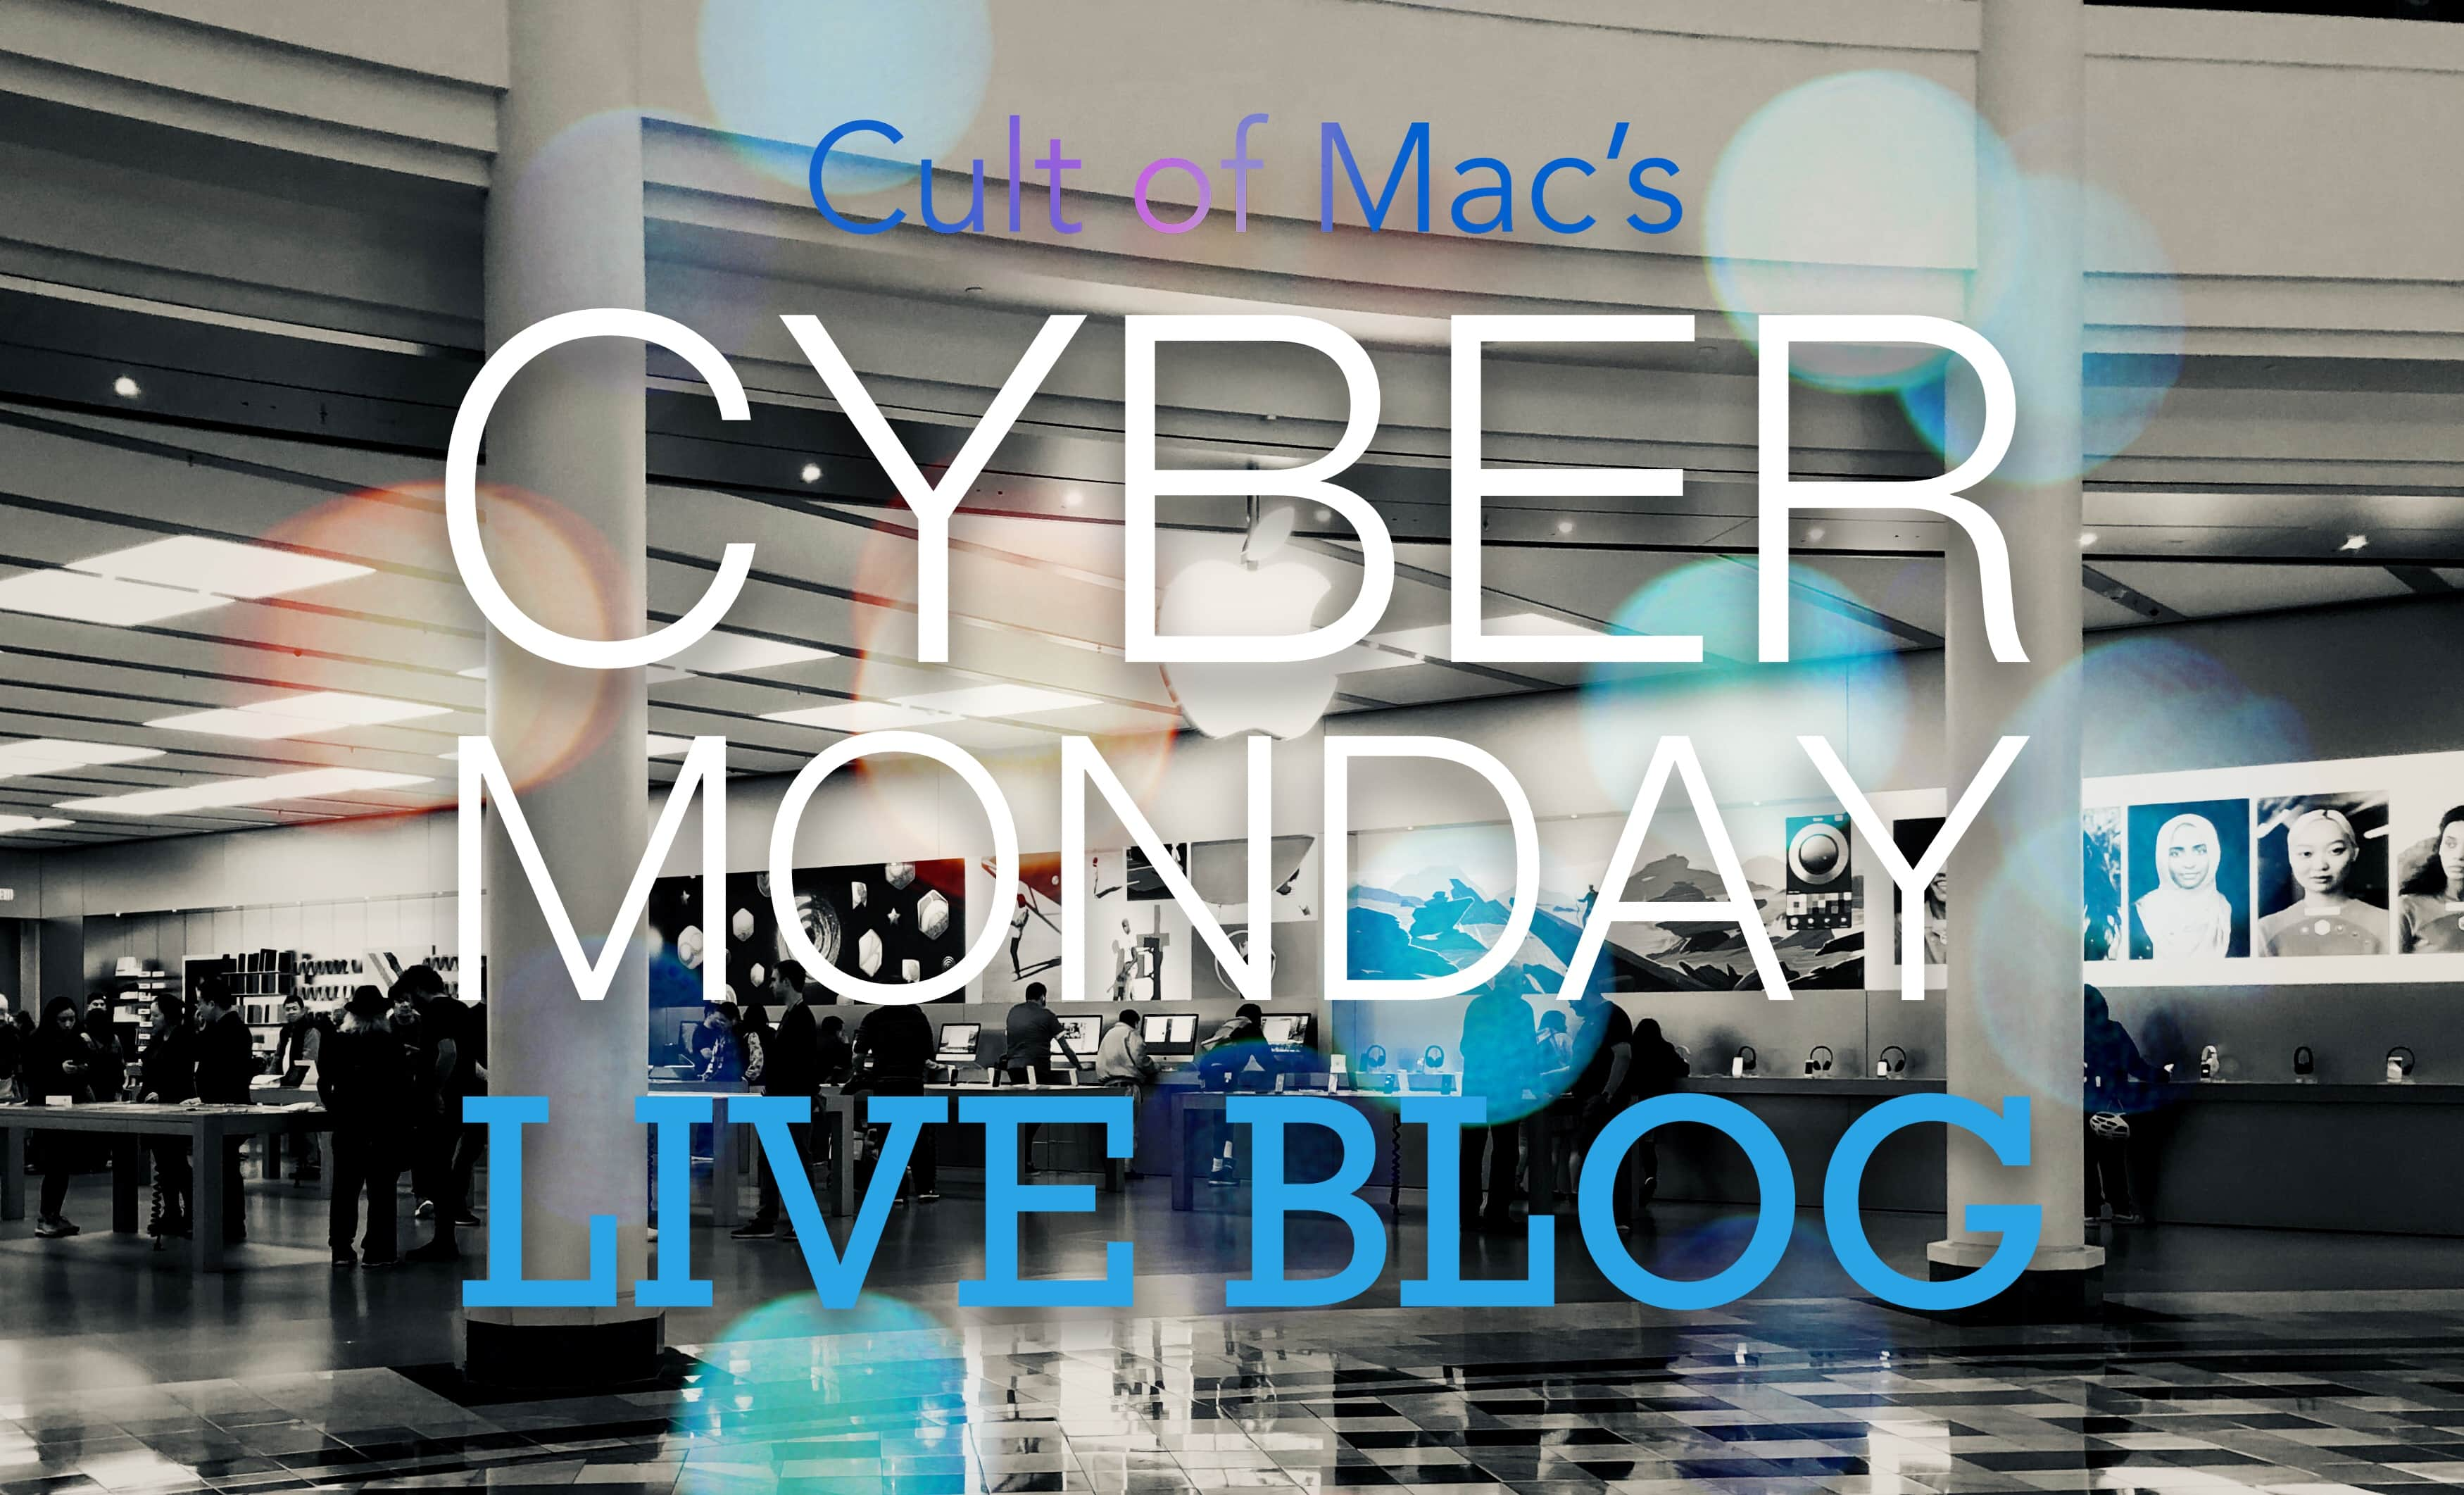 Cyber Monday live blog